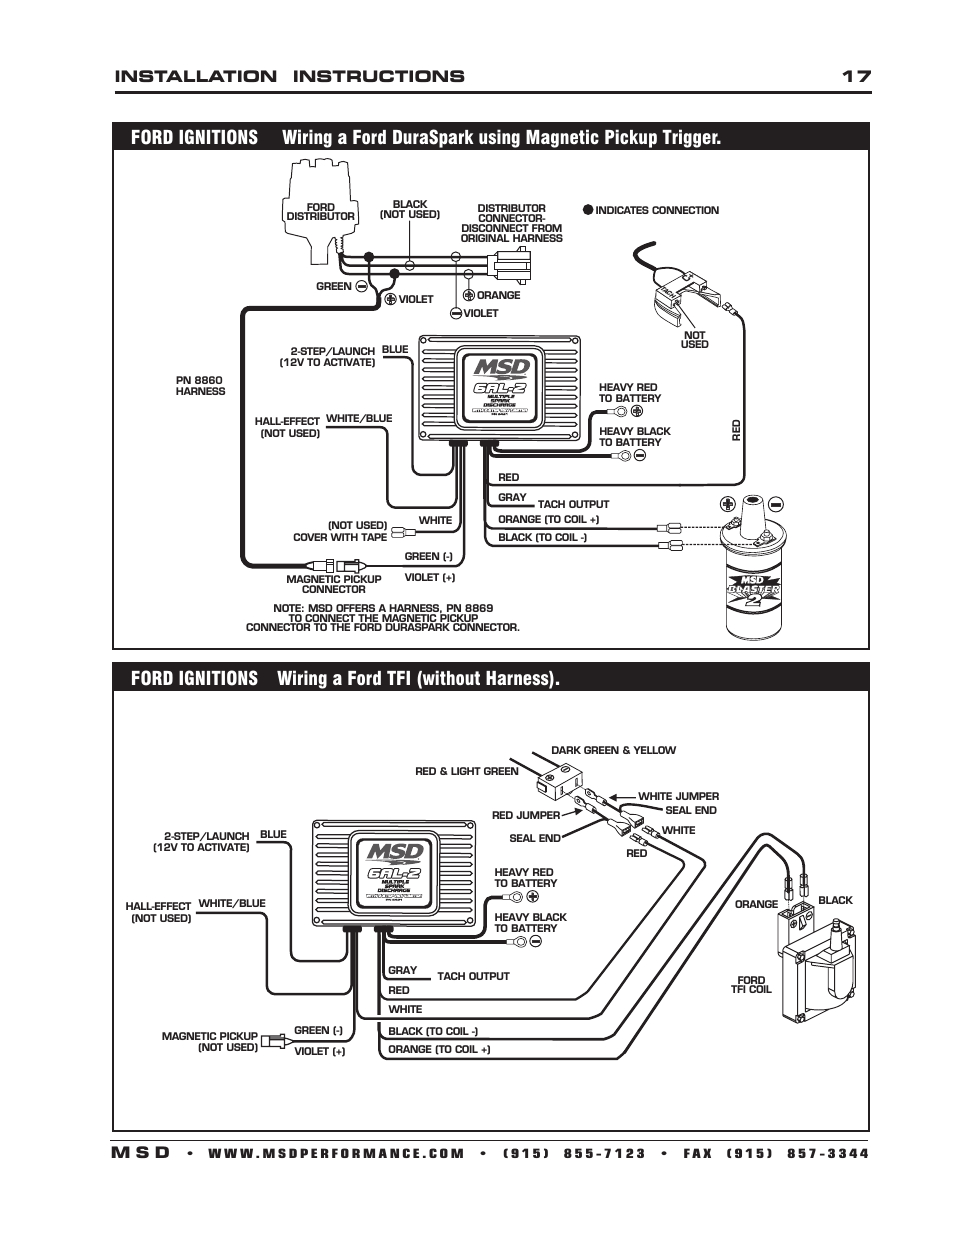 Ford Duraspark To Msd Ignition Wiring Diagram | Wiring Library - Duraspark 2 Wiring Diagram